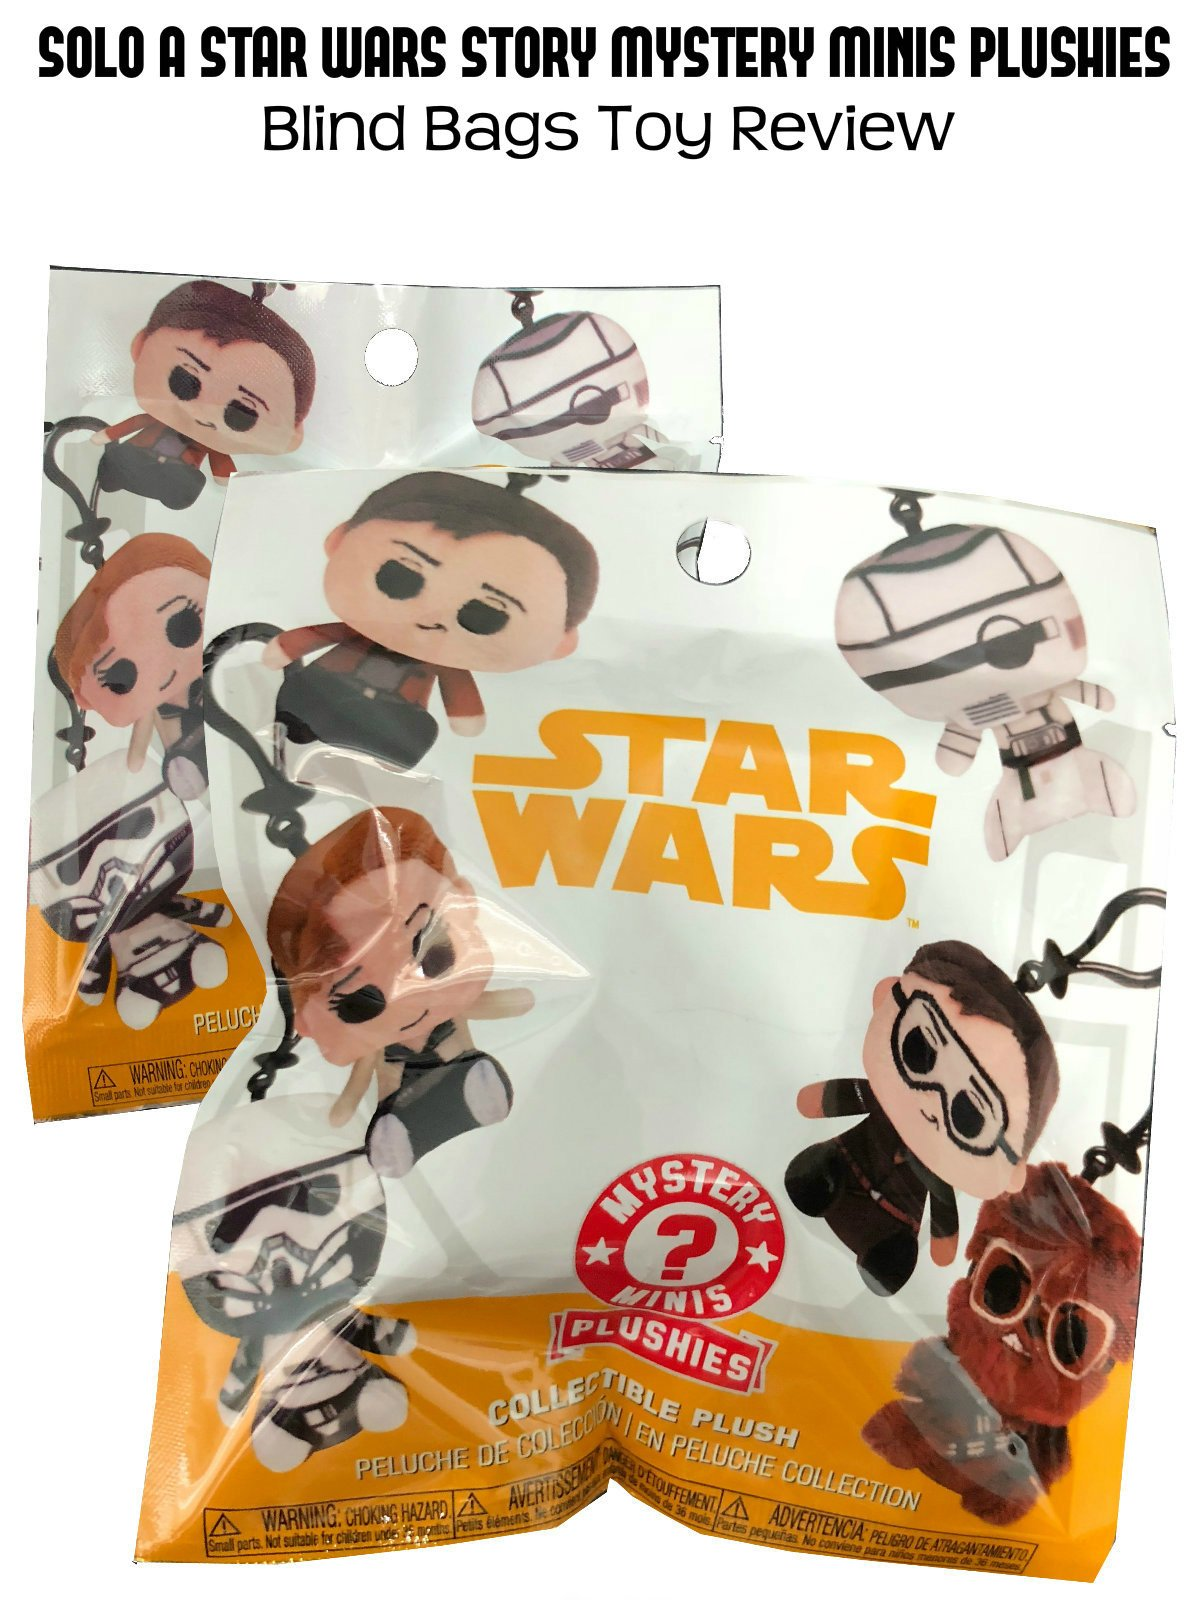 Review: Solo A Star Wars Story Mystery Minis Plushies Blind Bags Toy Review on Amazon Prime Video UK